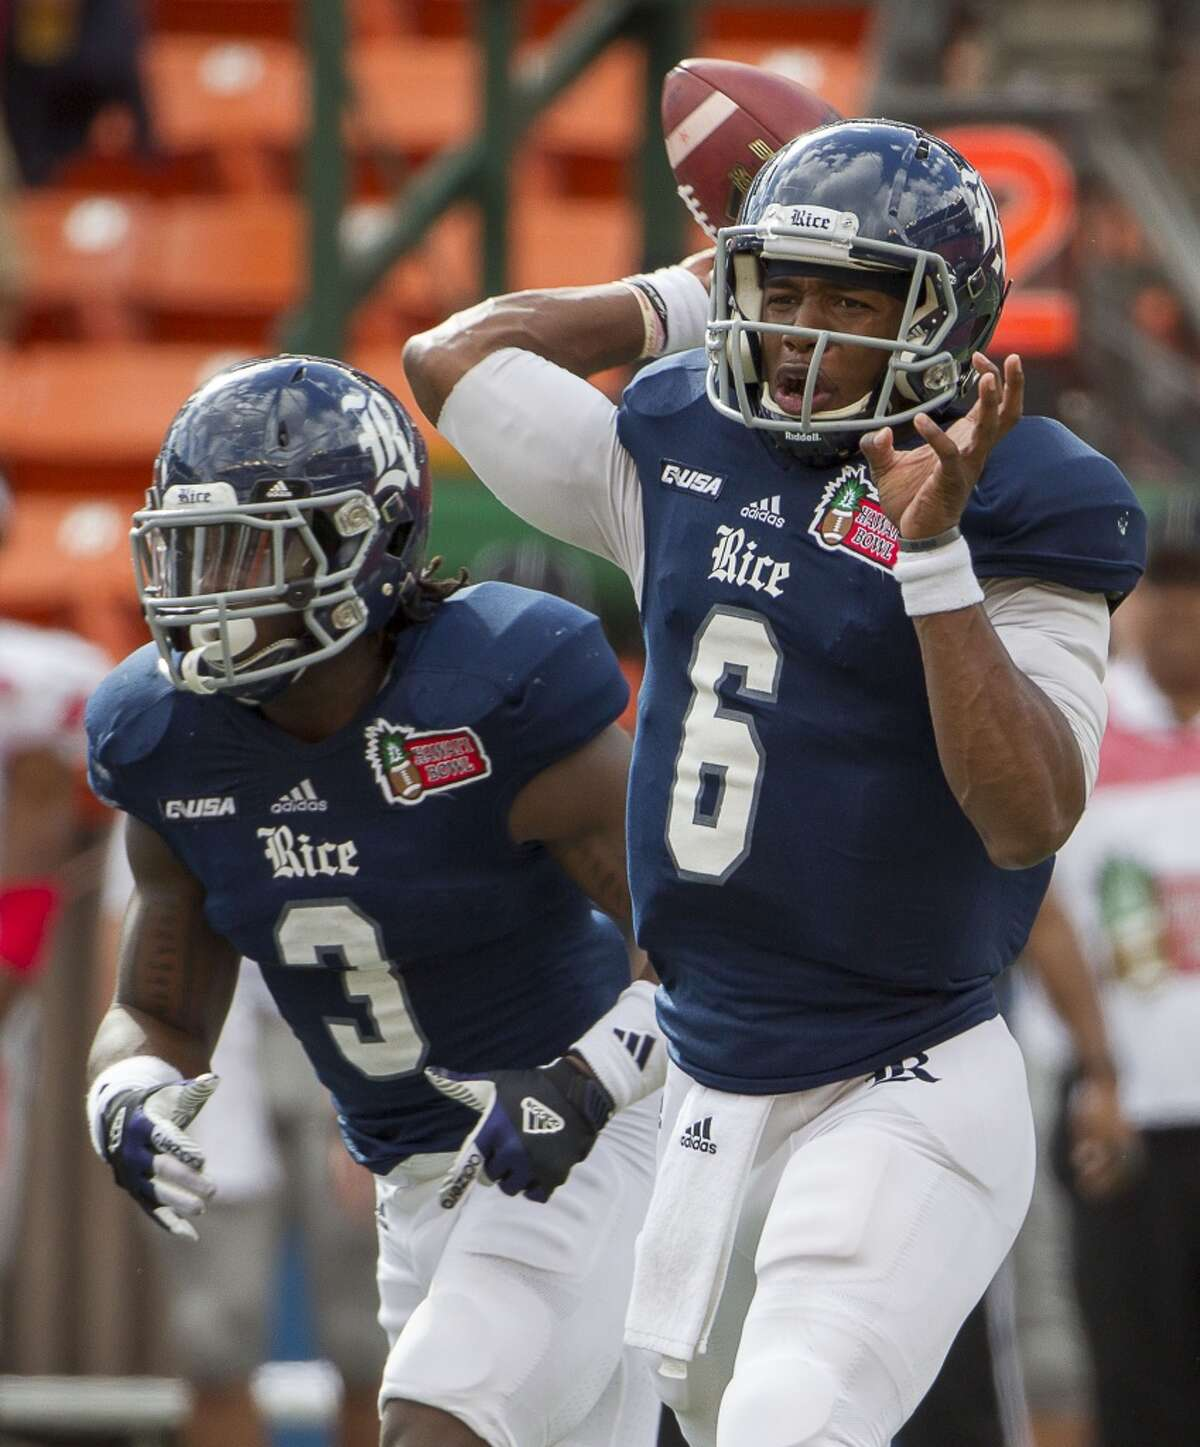 Rice quarterback Driphus Jackson (6) drops back to pass as running back Jowan Davis (3) looks on in the first quarter of the Hawaii Bowl NCAA college football game against Fresno State, Wednesday, Dec. 24, 2014, in Honolulu. (AP Photo/Eugene Tanner)